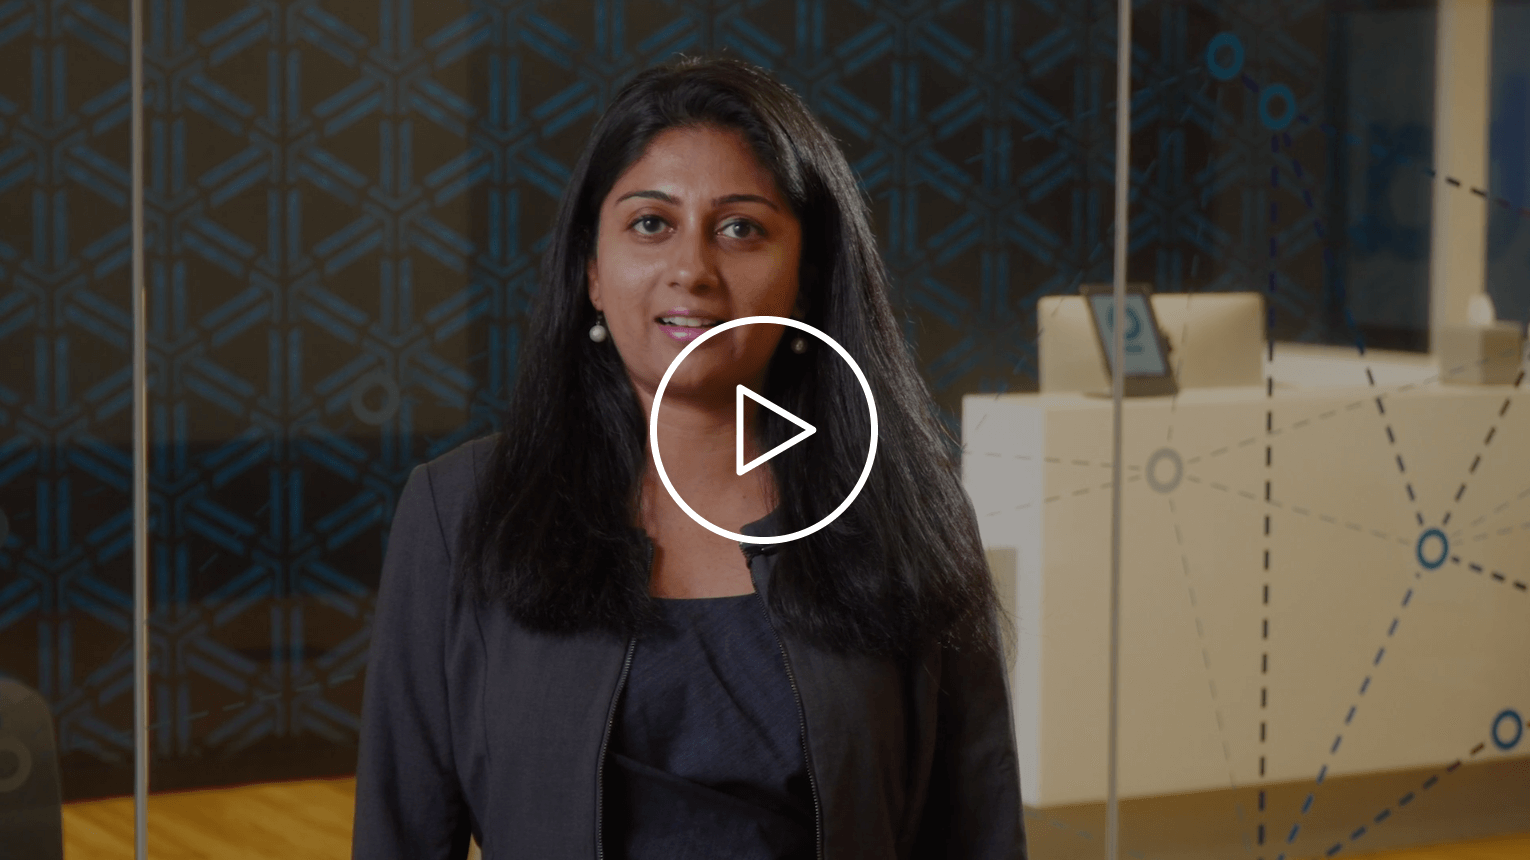 Okta Meet the Experts Video Jo